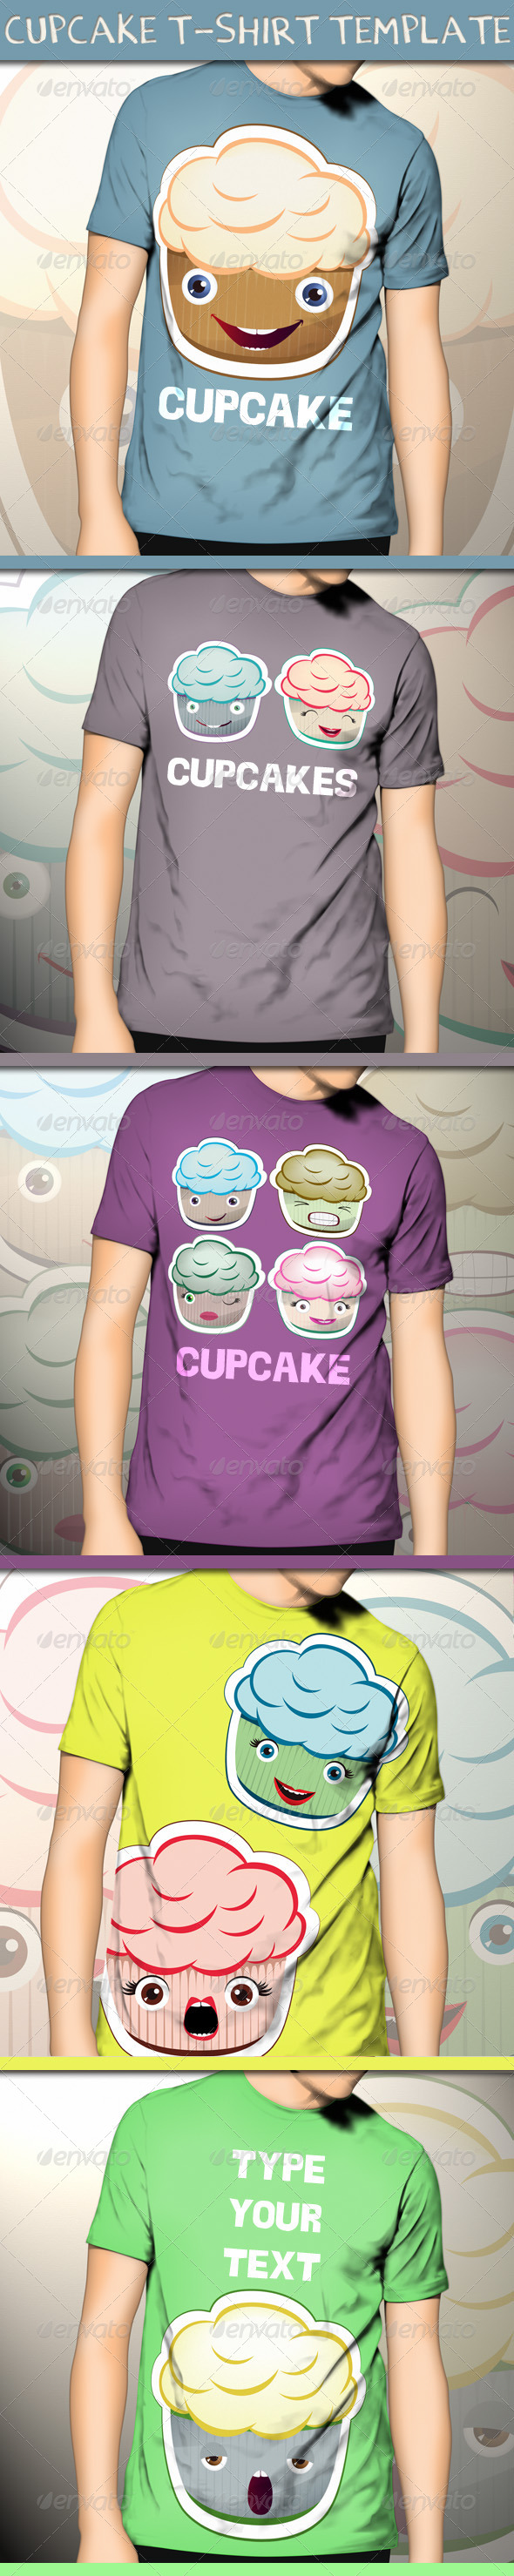 Cupcake T-Shirt Template - Funny Designs